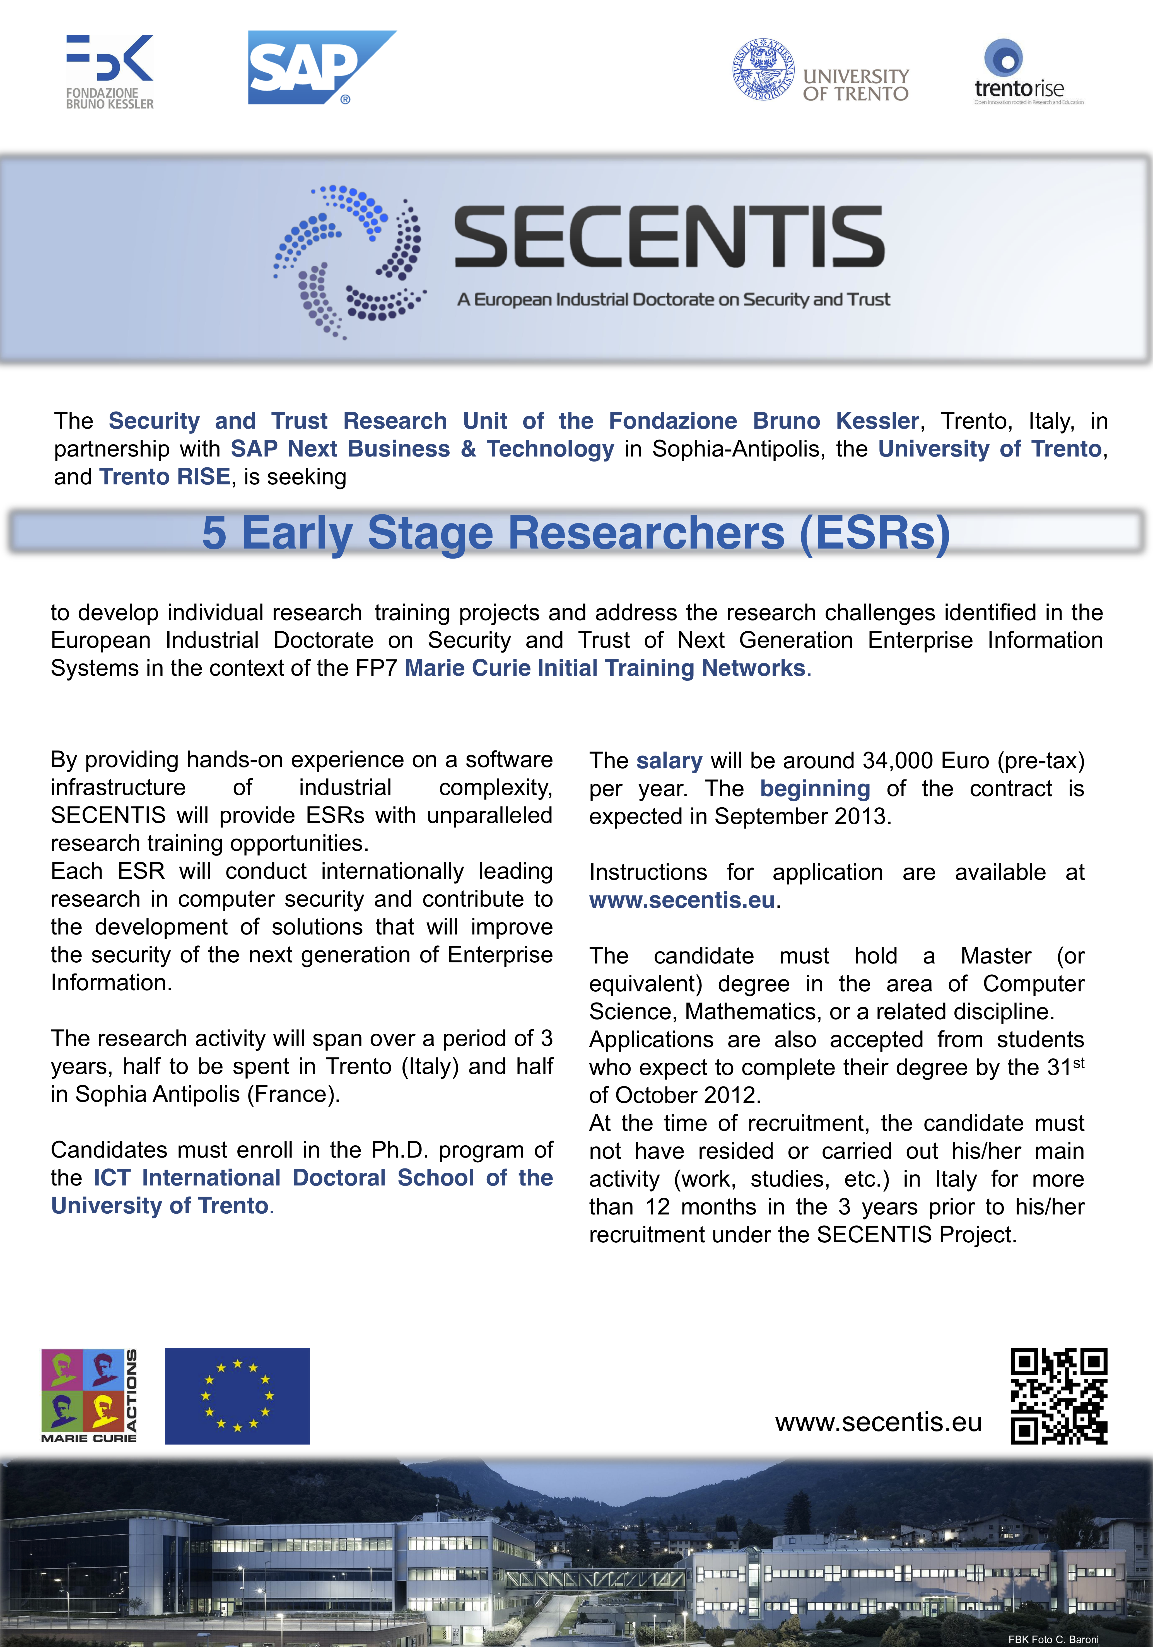 D1.2 Project Presentation 3 Project Presentation Poster and Flyer The following poster aimed to advertise the posts of the ESRs.